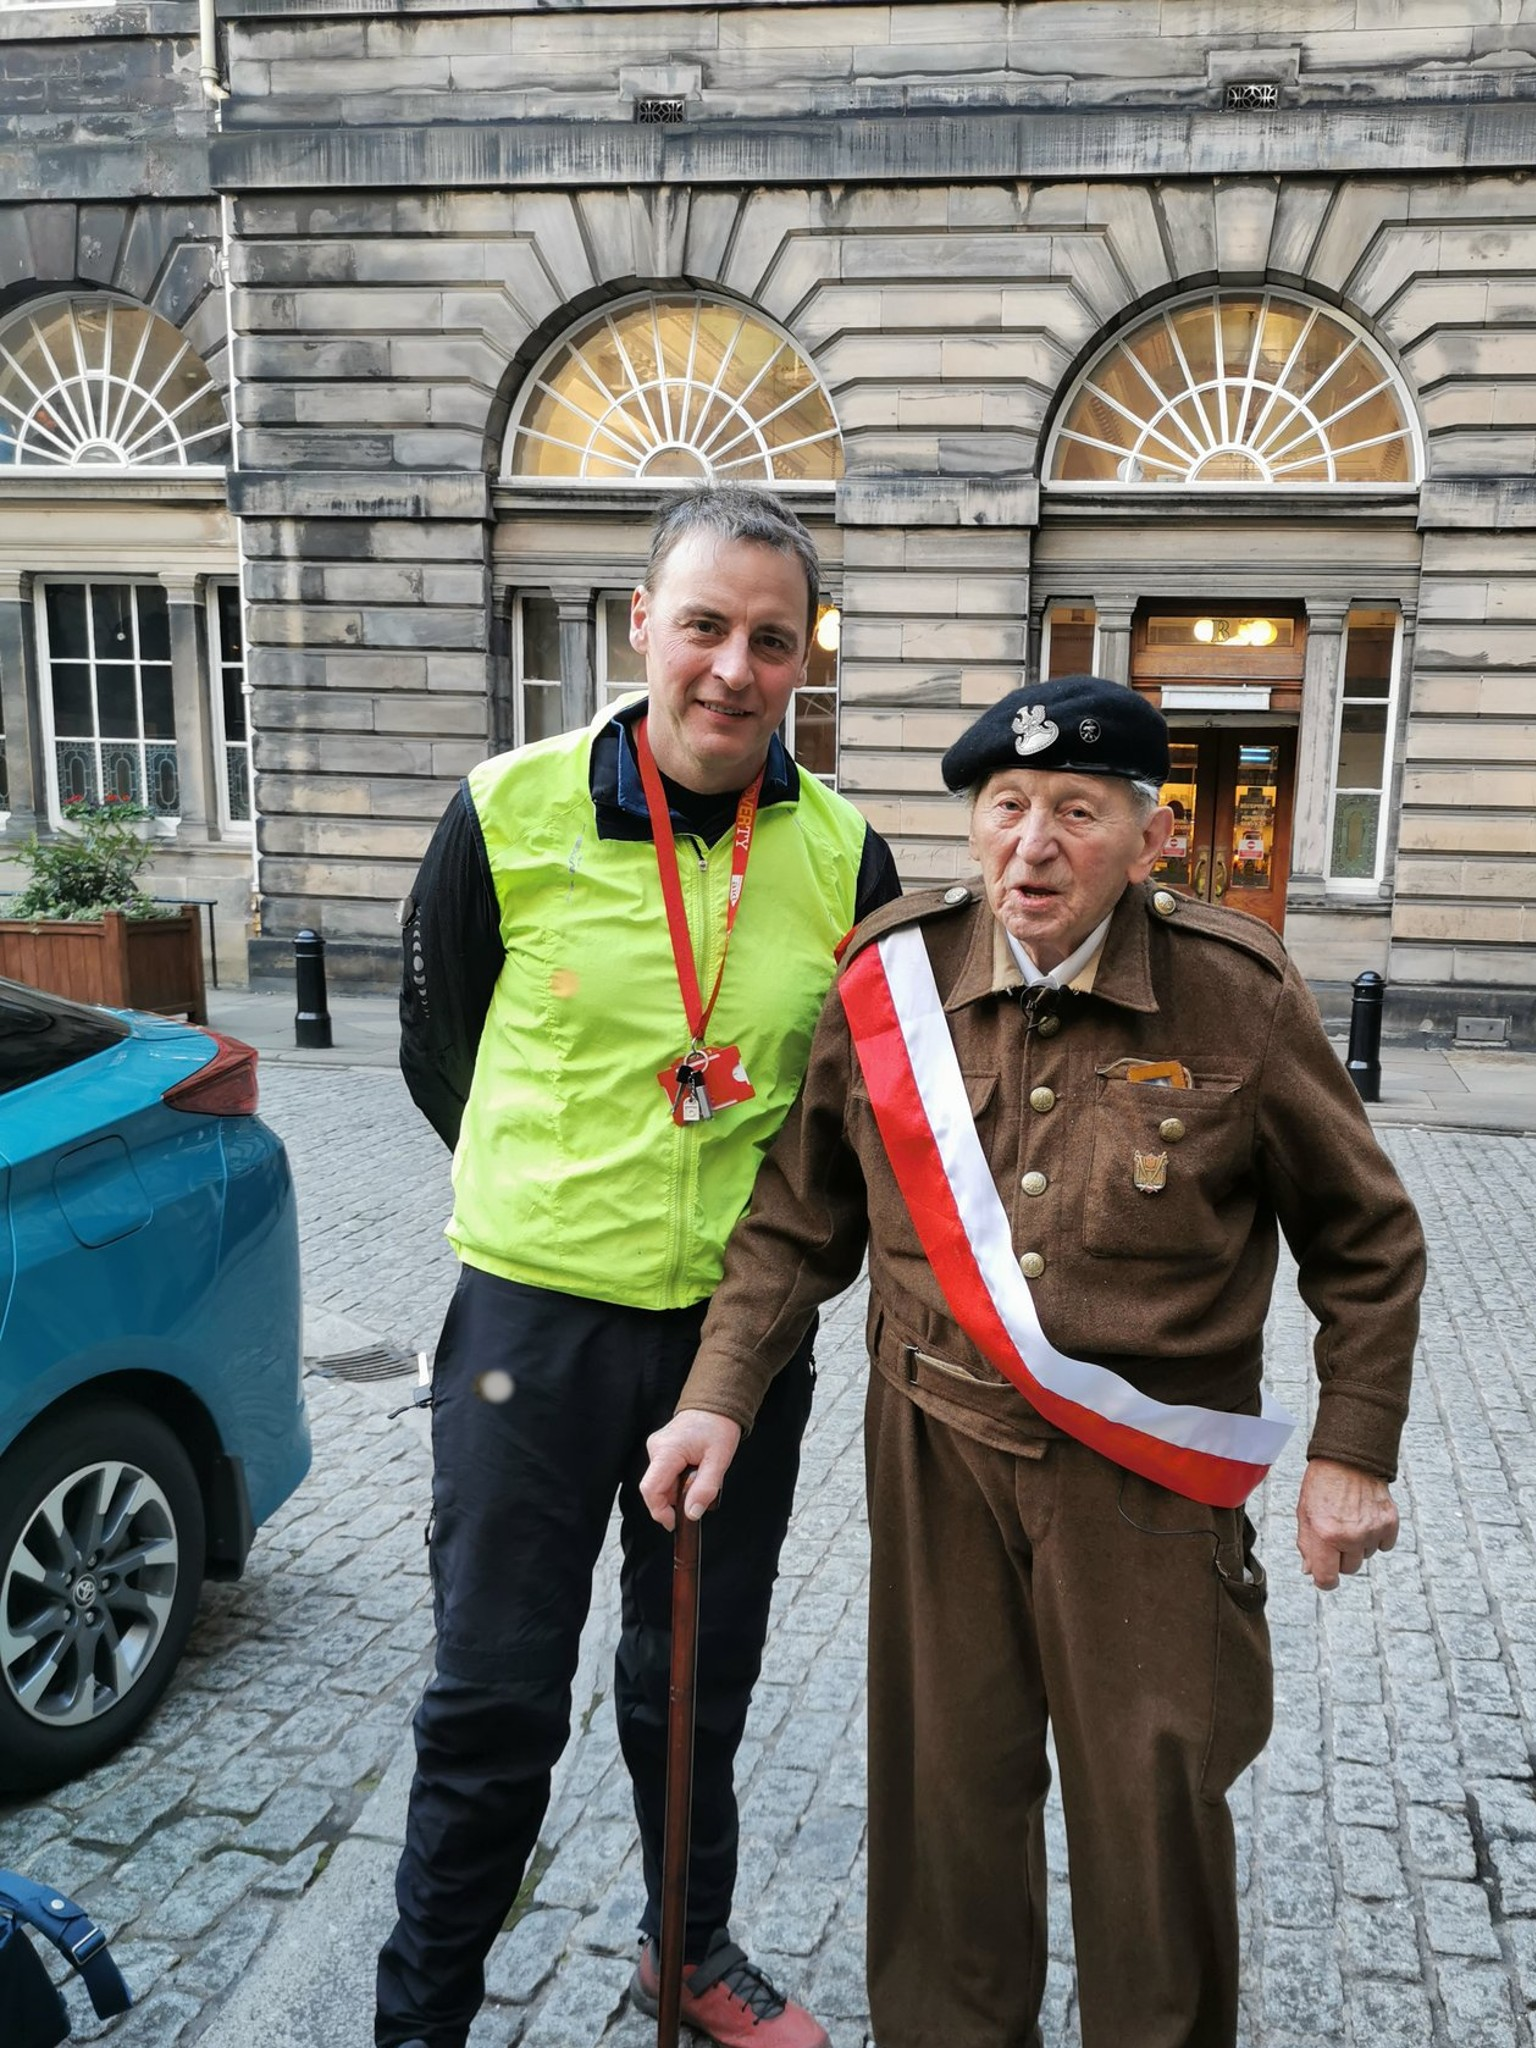 Ludwik Jaszczur wearing old military outfit takes photo with Cllr Scott Arthur